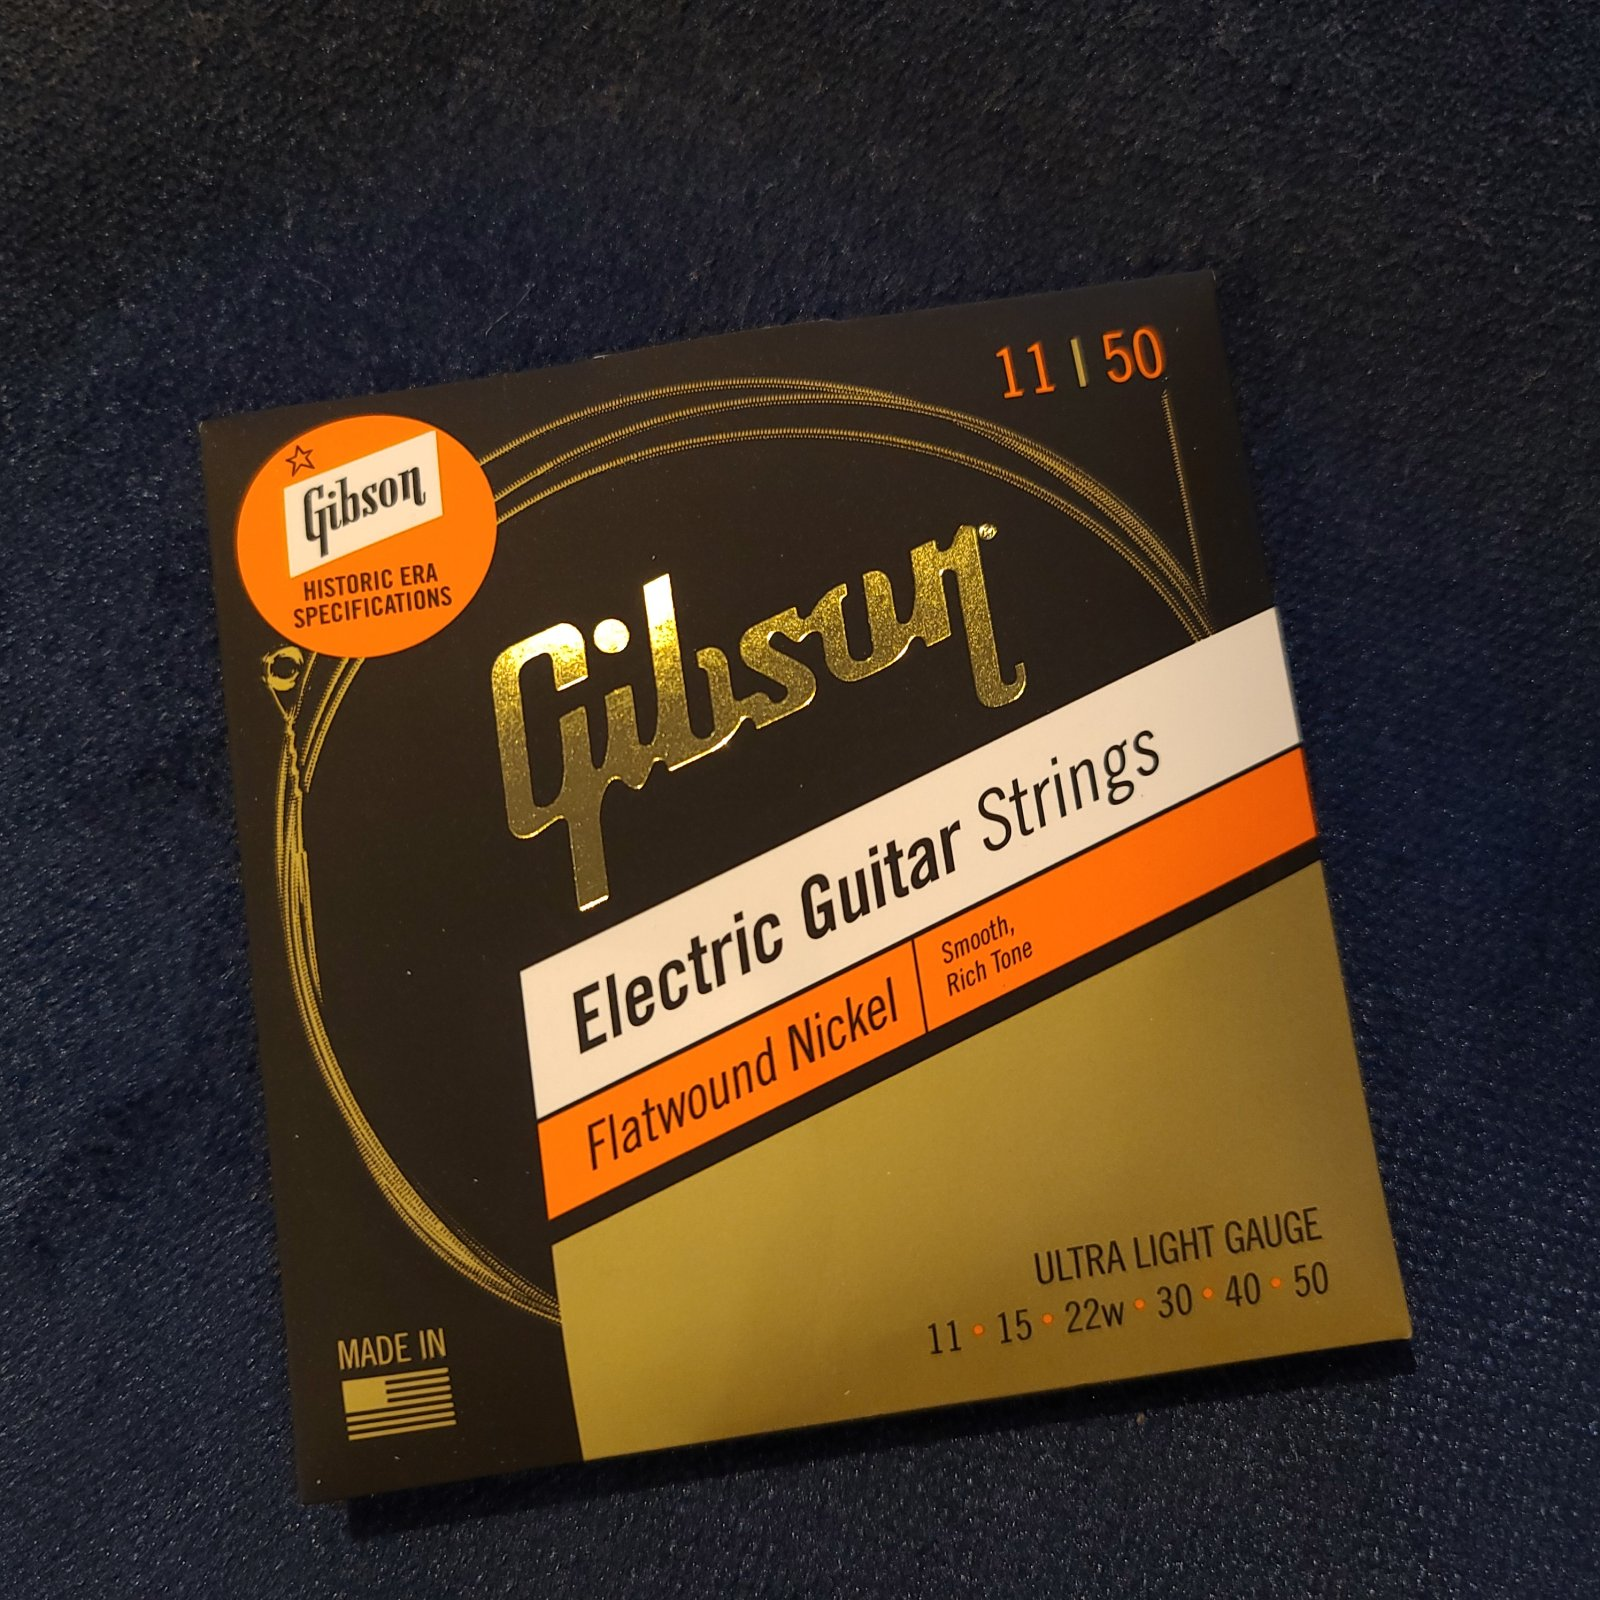 Gibson Flatwound Electric Strings 11-50 historic Era Specifications